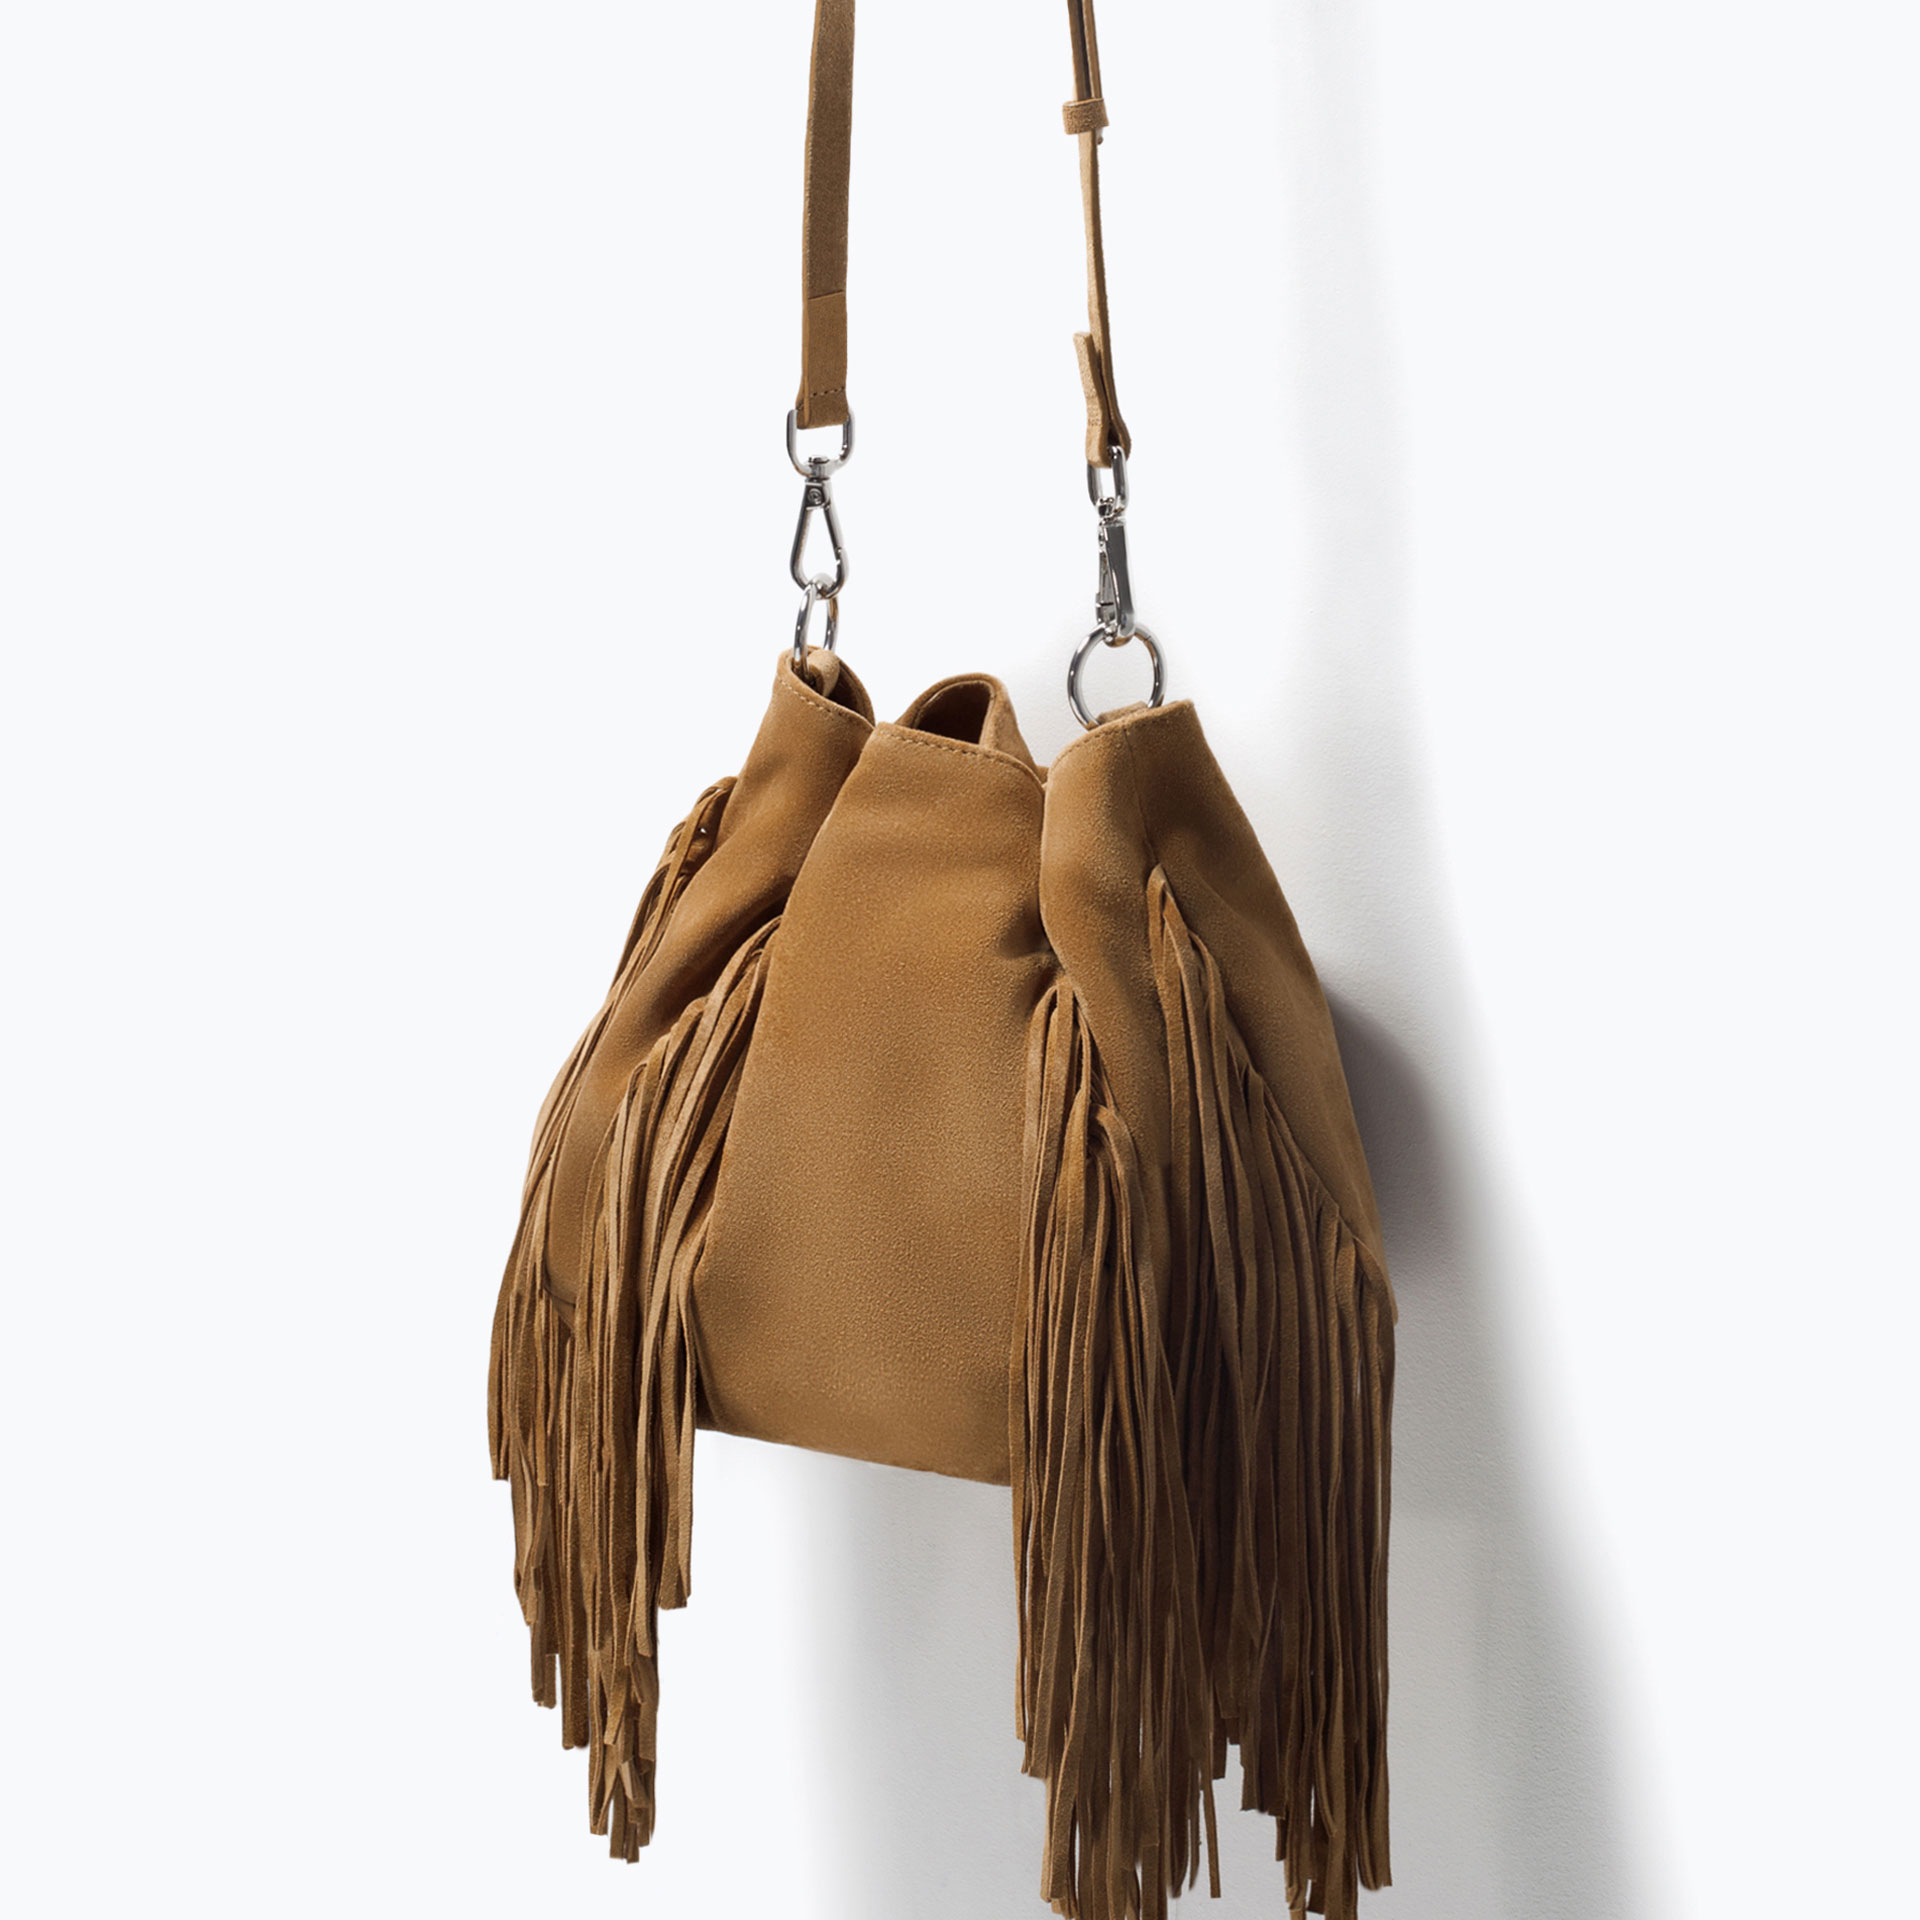 Beautiful Tory Burch brown suede fringe handbag! Only used once or twice and in perfect condition. When you open the flap, there is a pocket that is nearly the width of the bag.